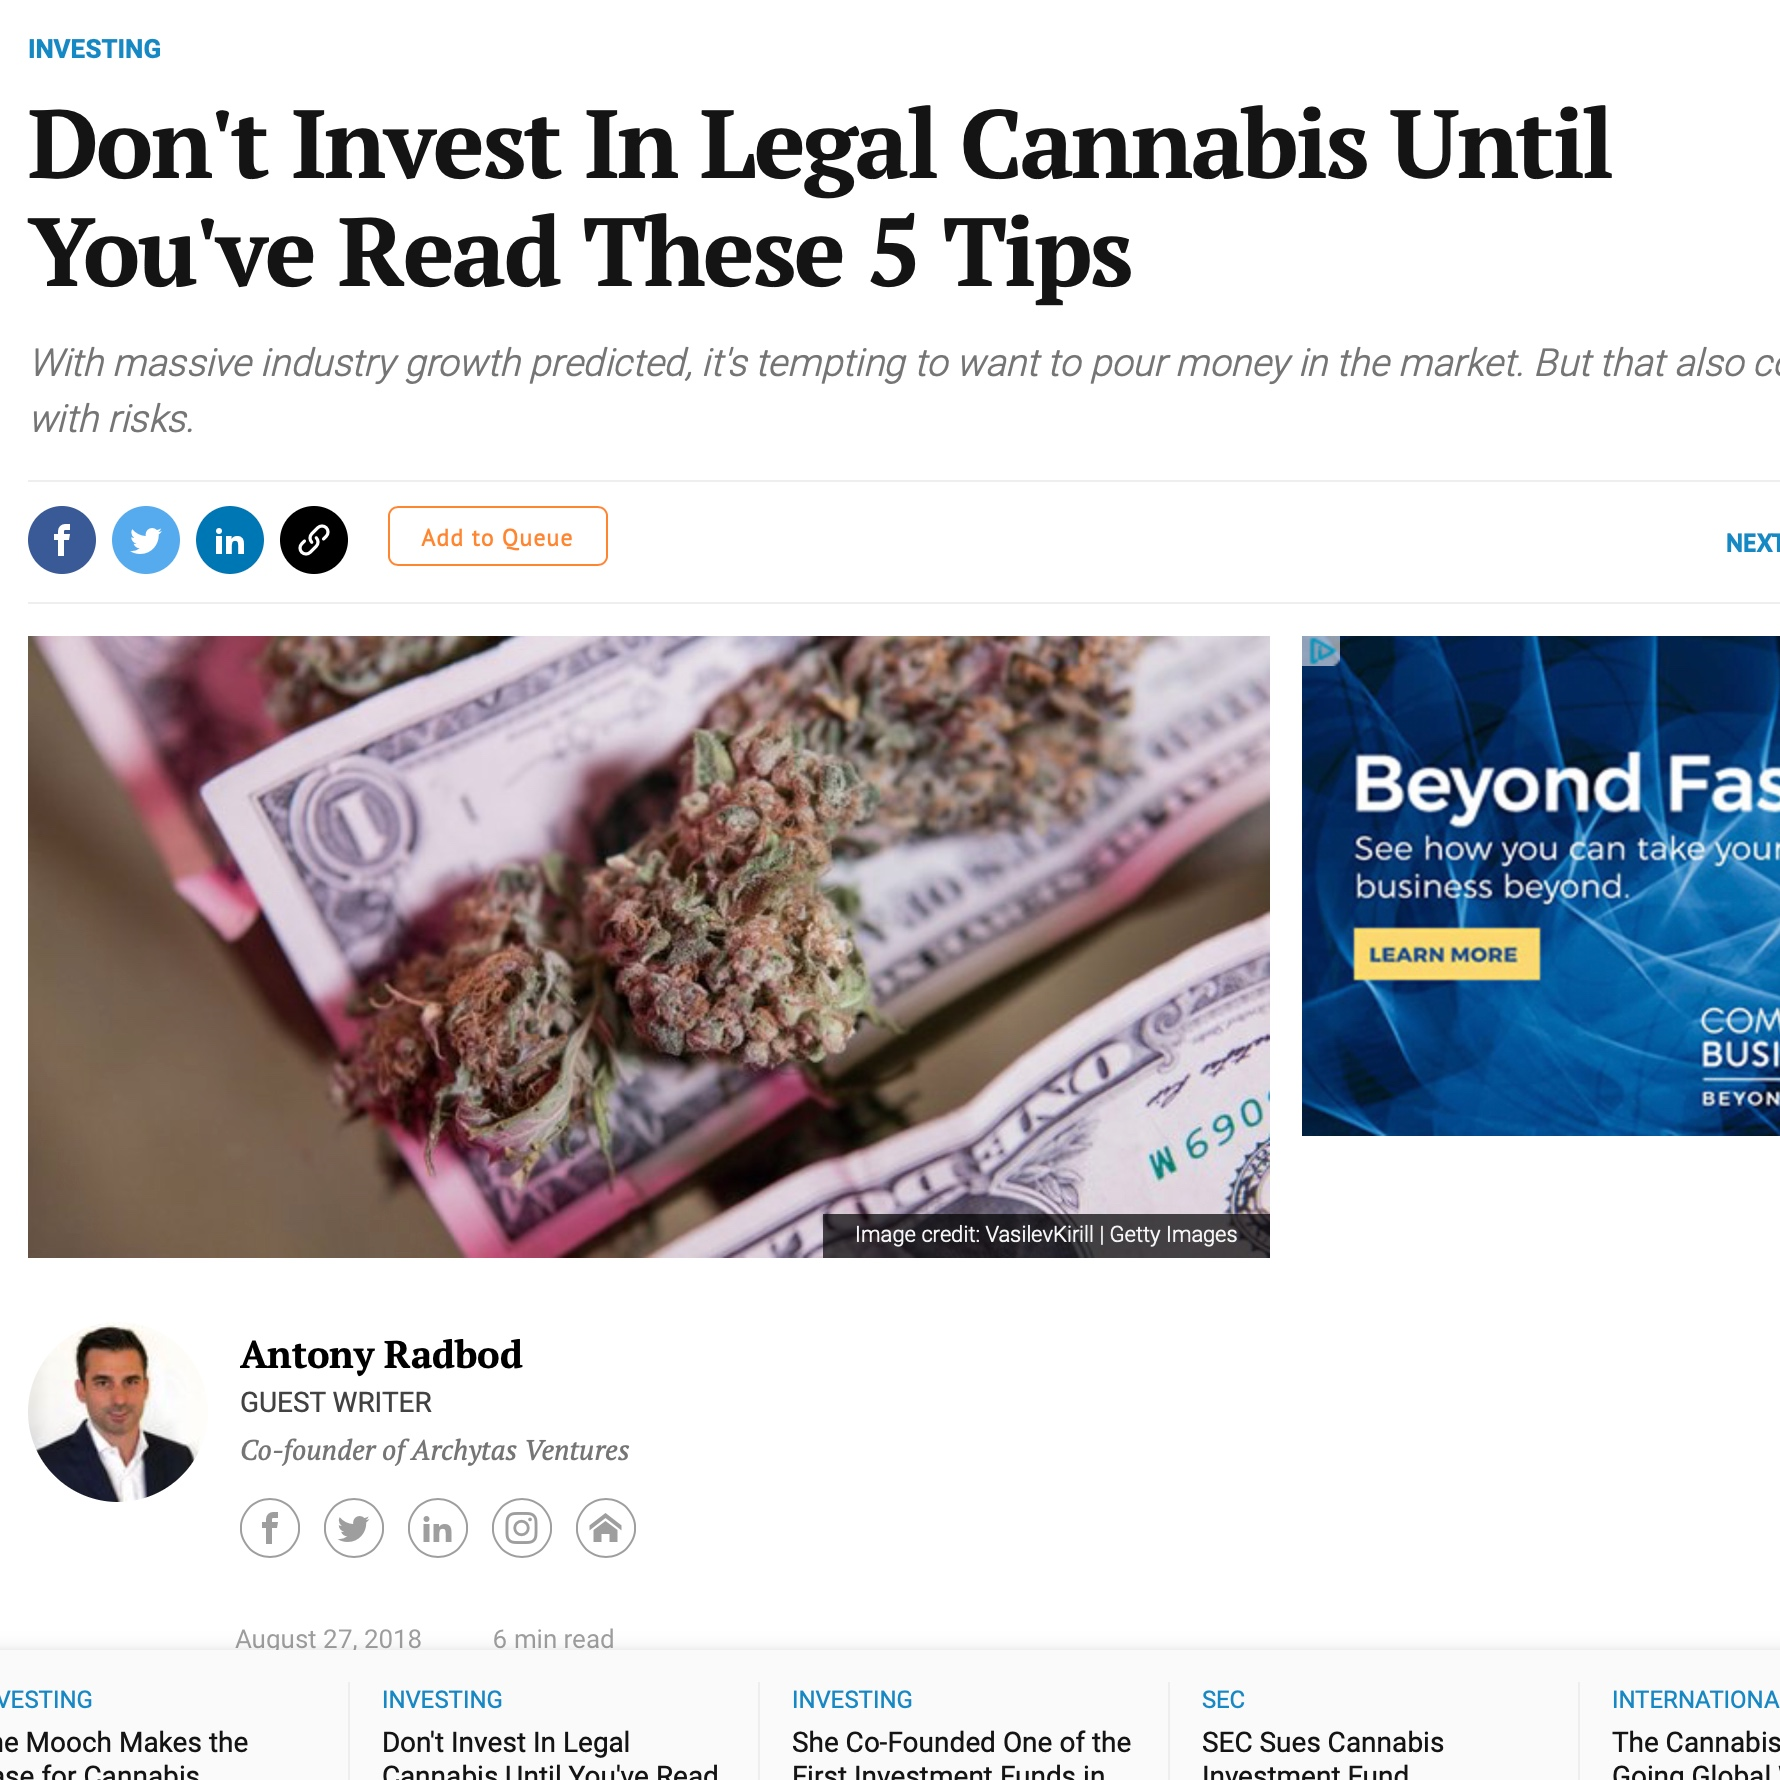 Don't Invest in Legal Cannabis Until You've Read These 5 Tips -